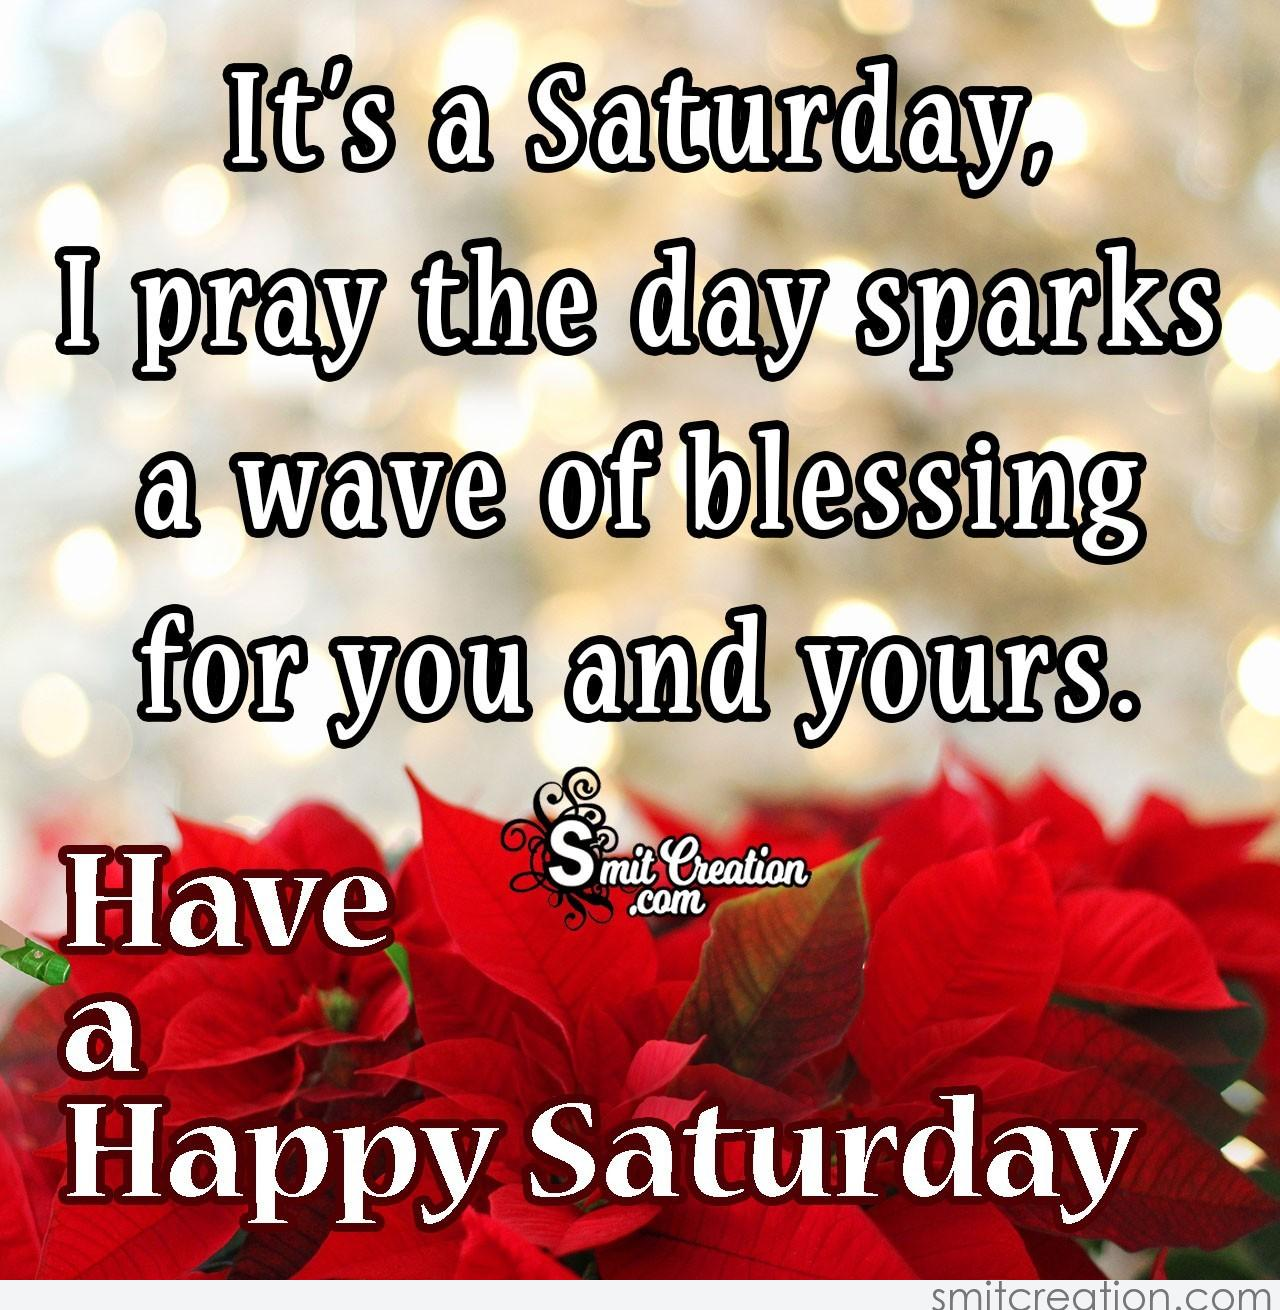 Saturday Prayer Blessing Images